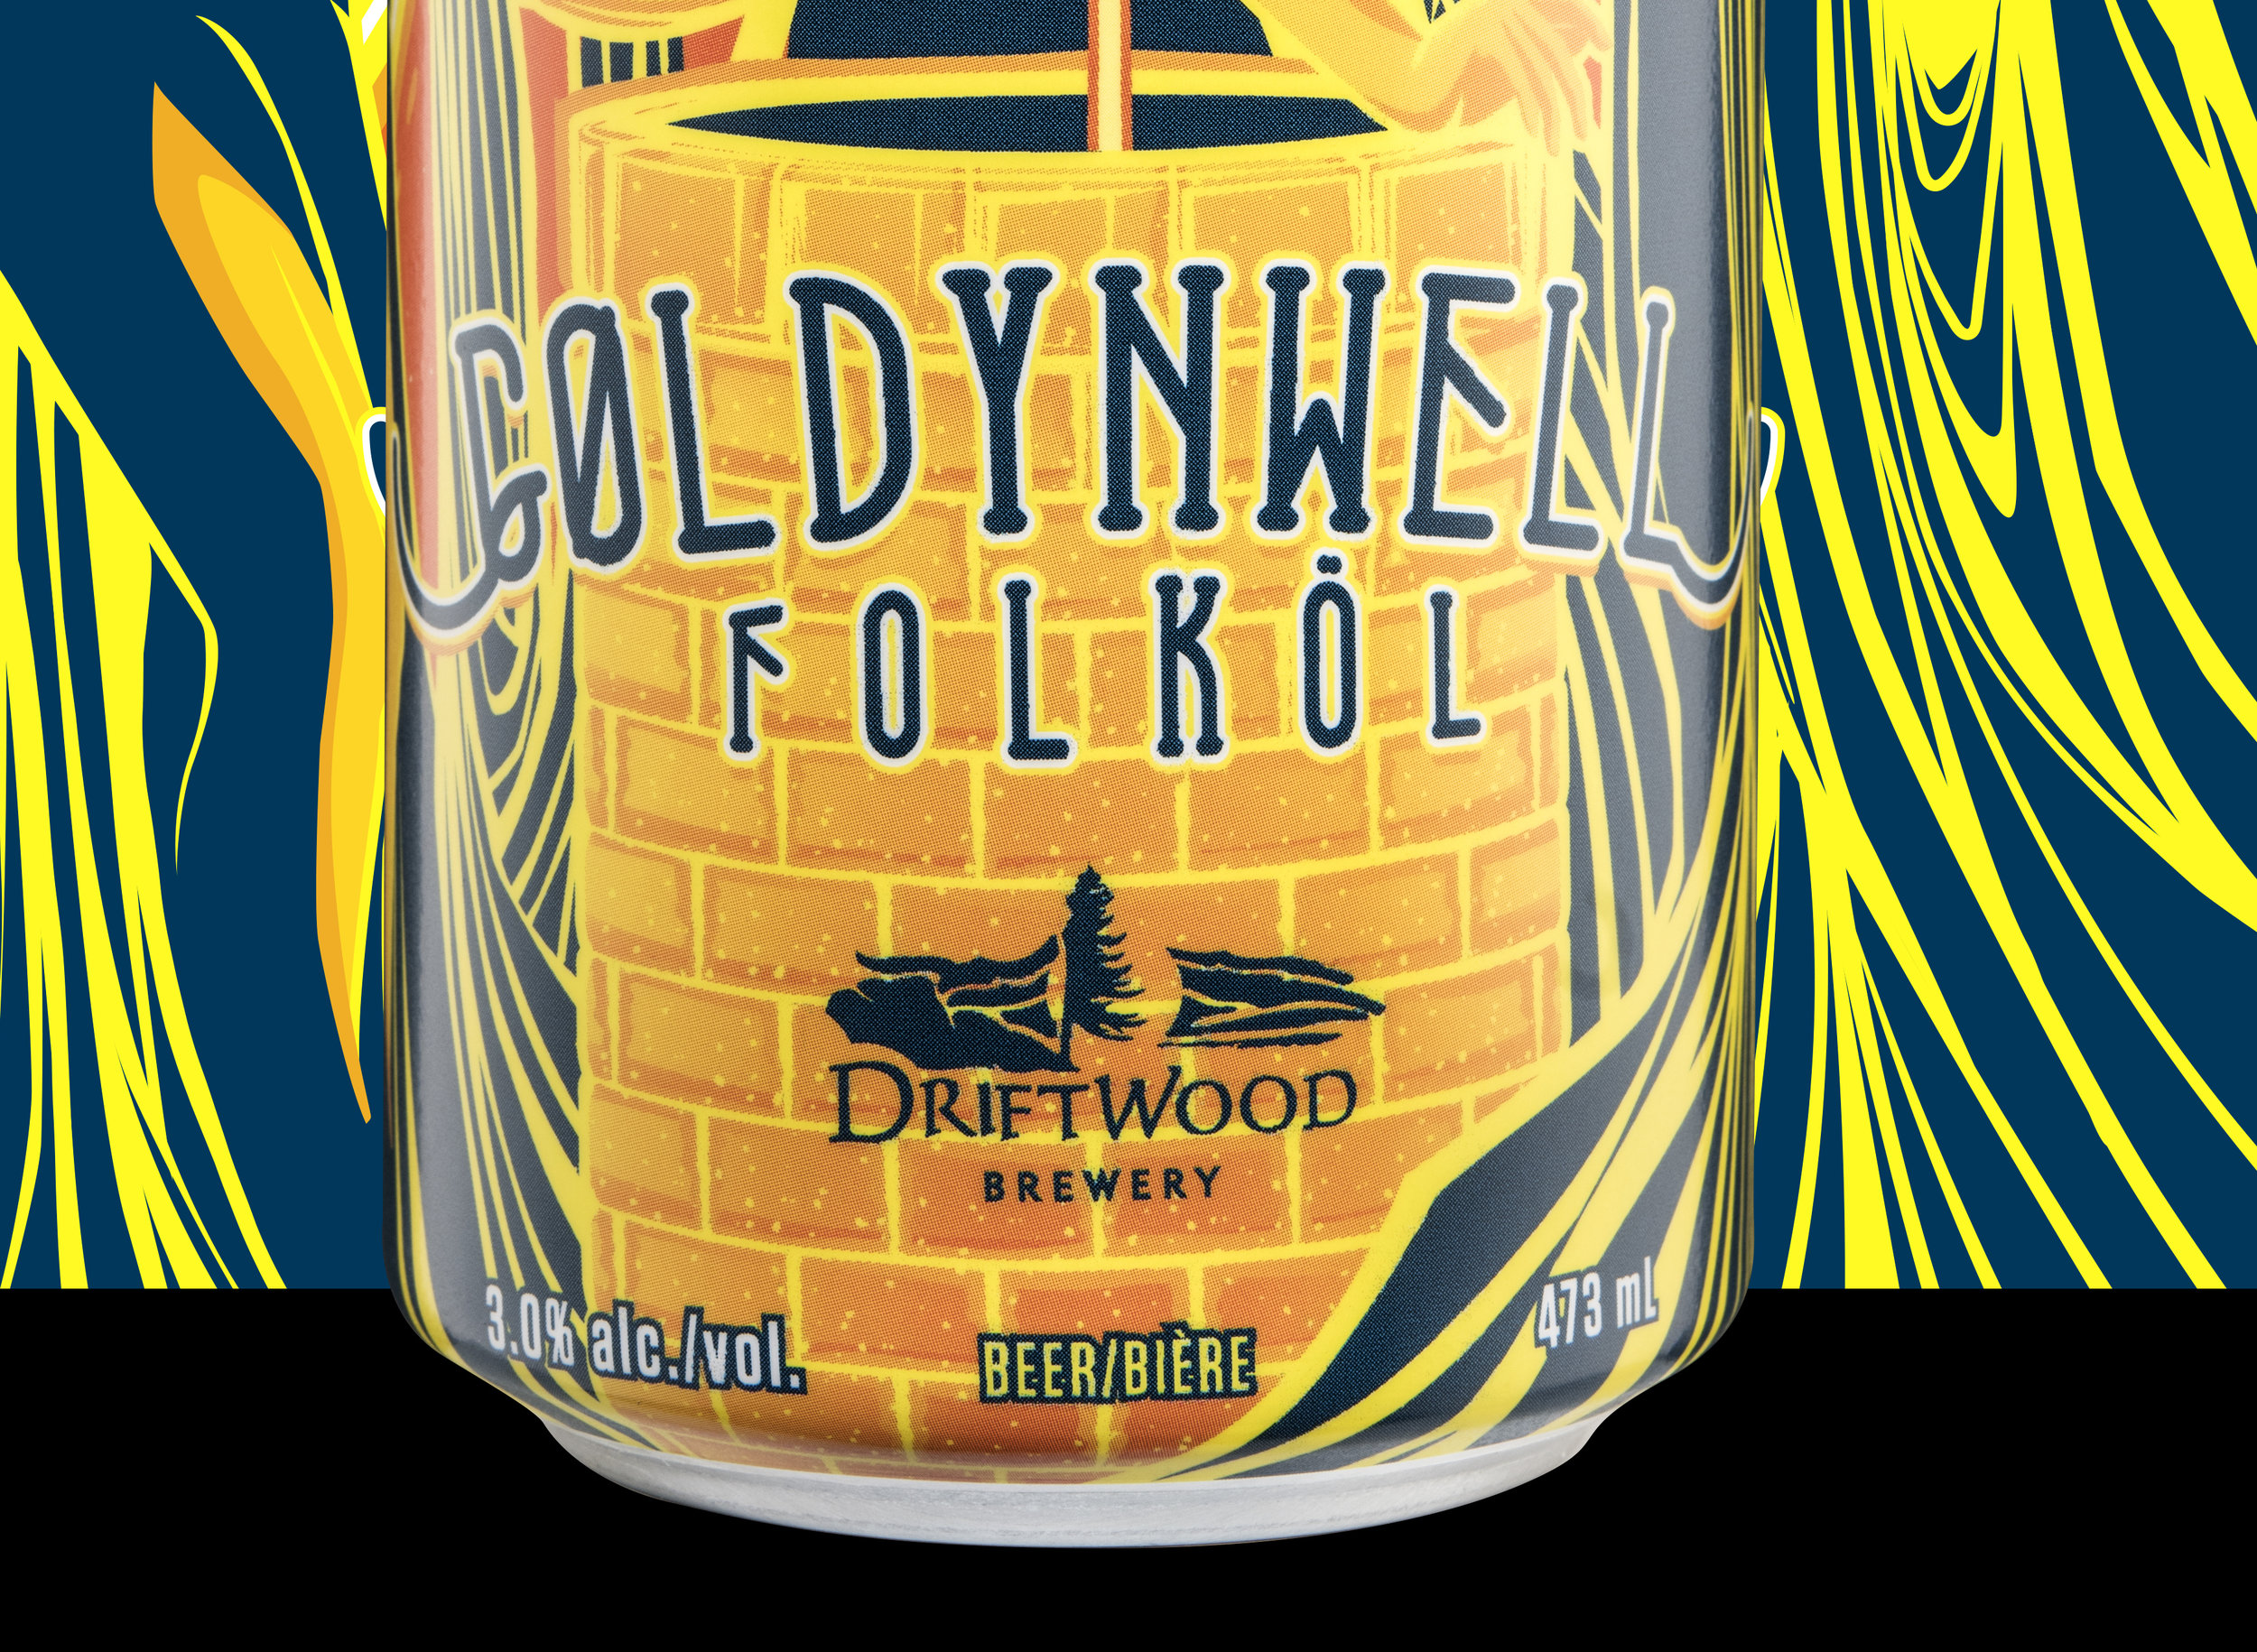 Driftwood Brewery's New Goldynwell Folköl Design / World Brand & Packaging Design Society